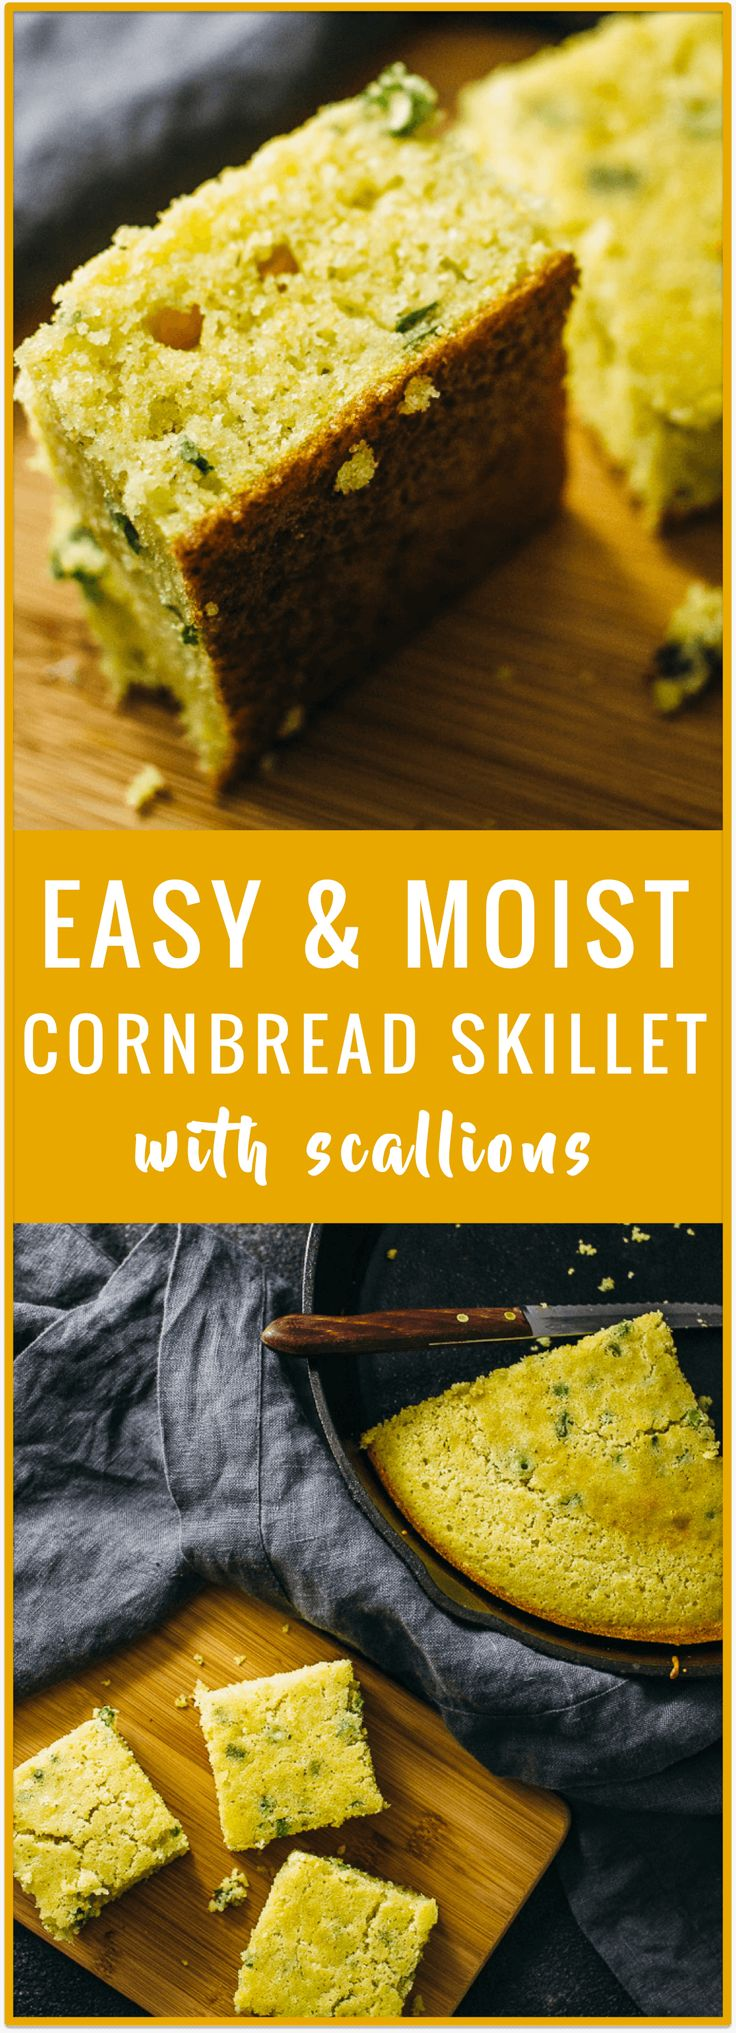 Skip the Jiffy cornbread mixes and try this Southern-inspired cornbread skillet with scallions. It's an easy recipe for homemade cornbread that's healthy and not too sweet. No buttermilk needed.